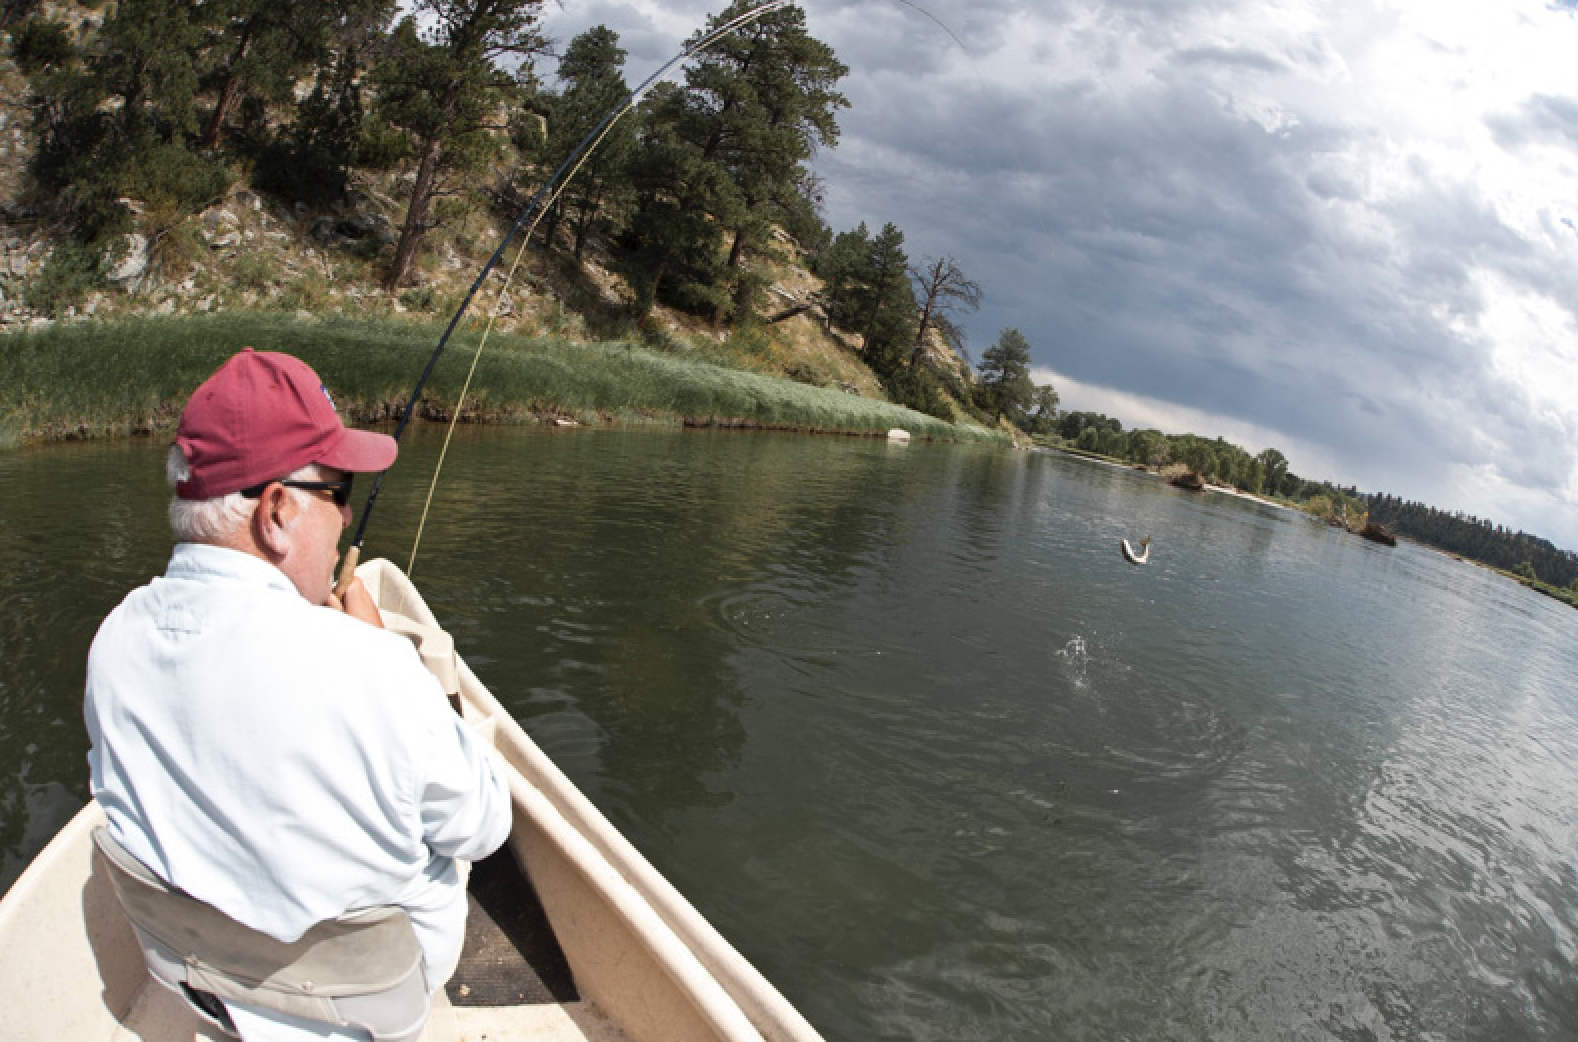 Fly Fishing the Yellowstone River near Livingston with Fins & Feathers of Bozeman fly fishing guide Toby Swank.